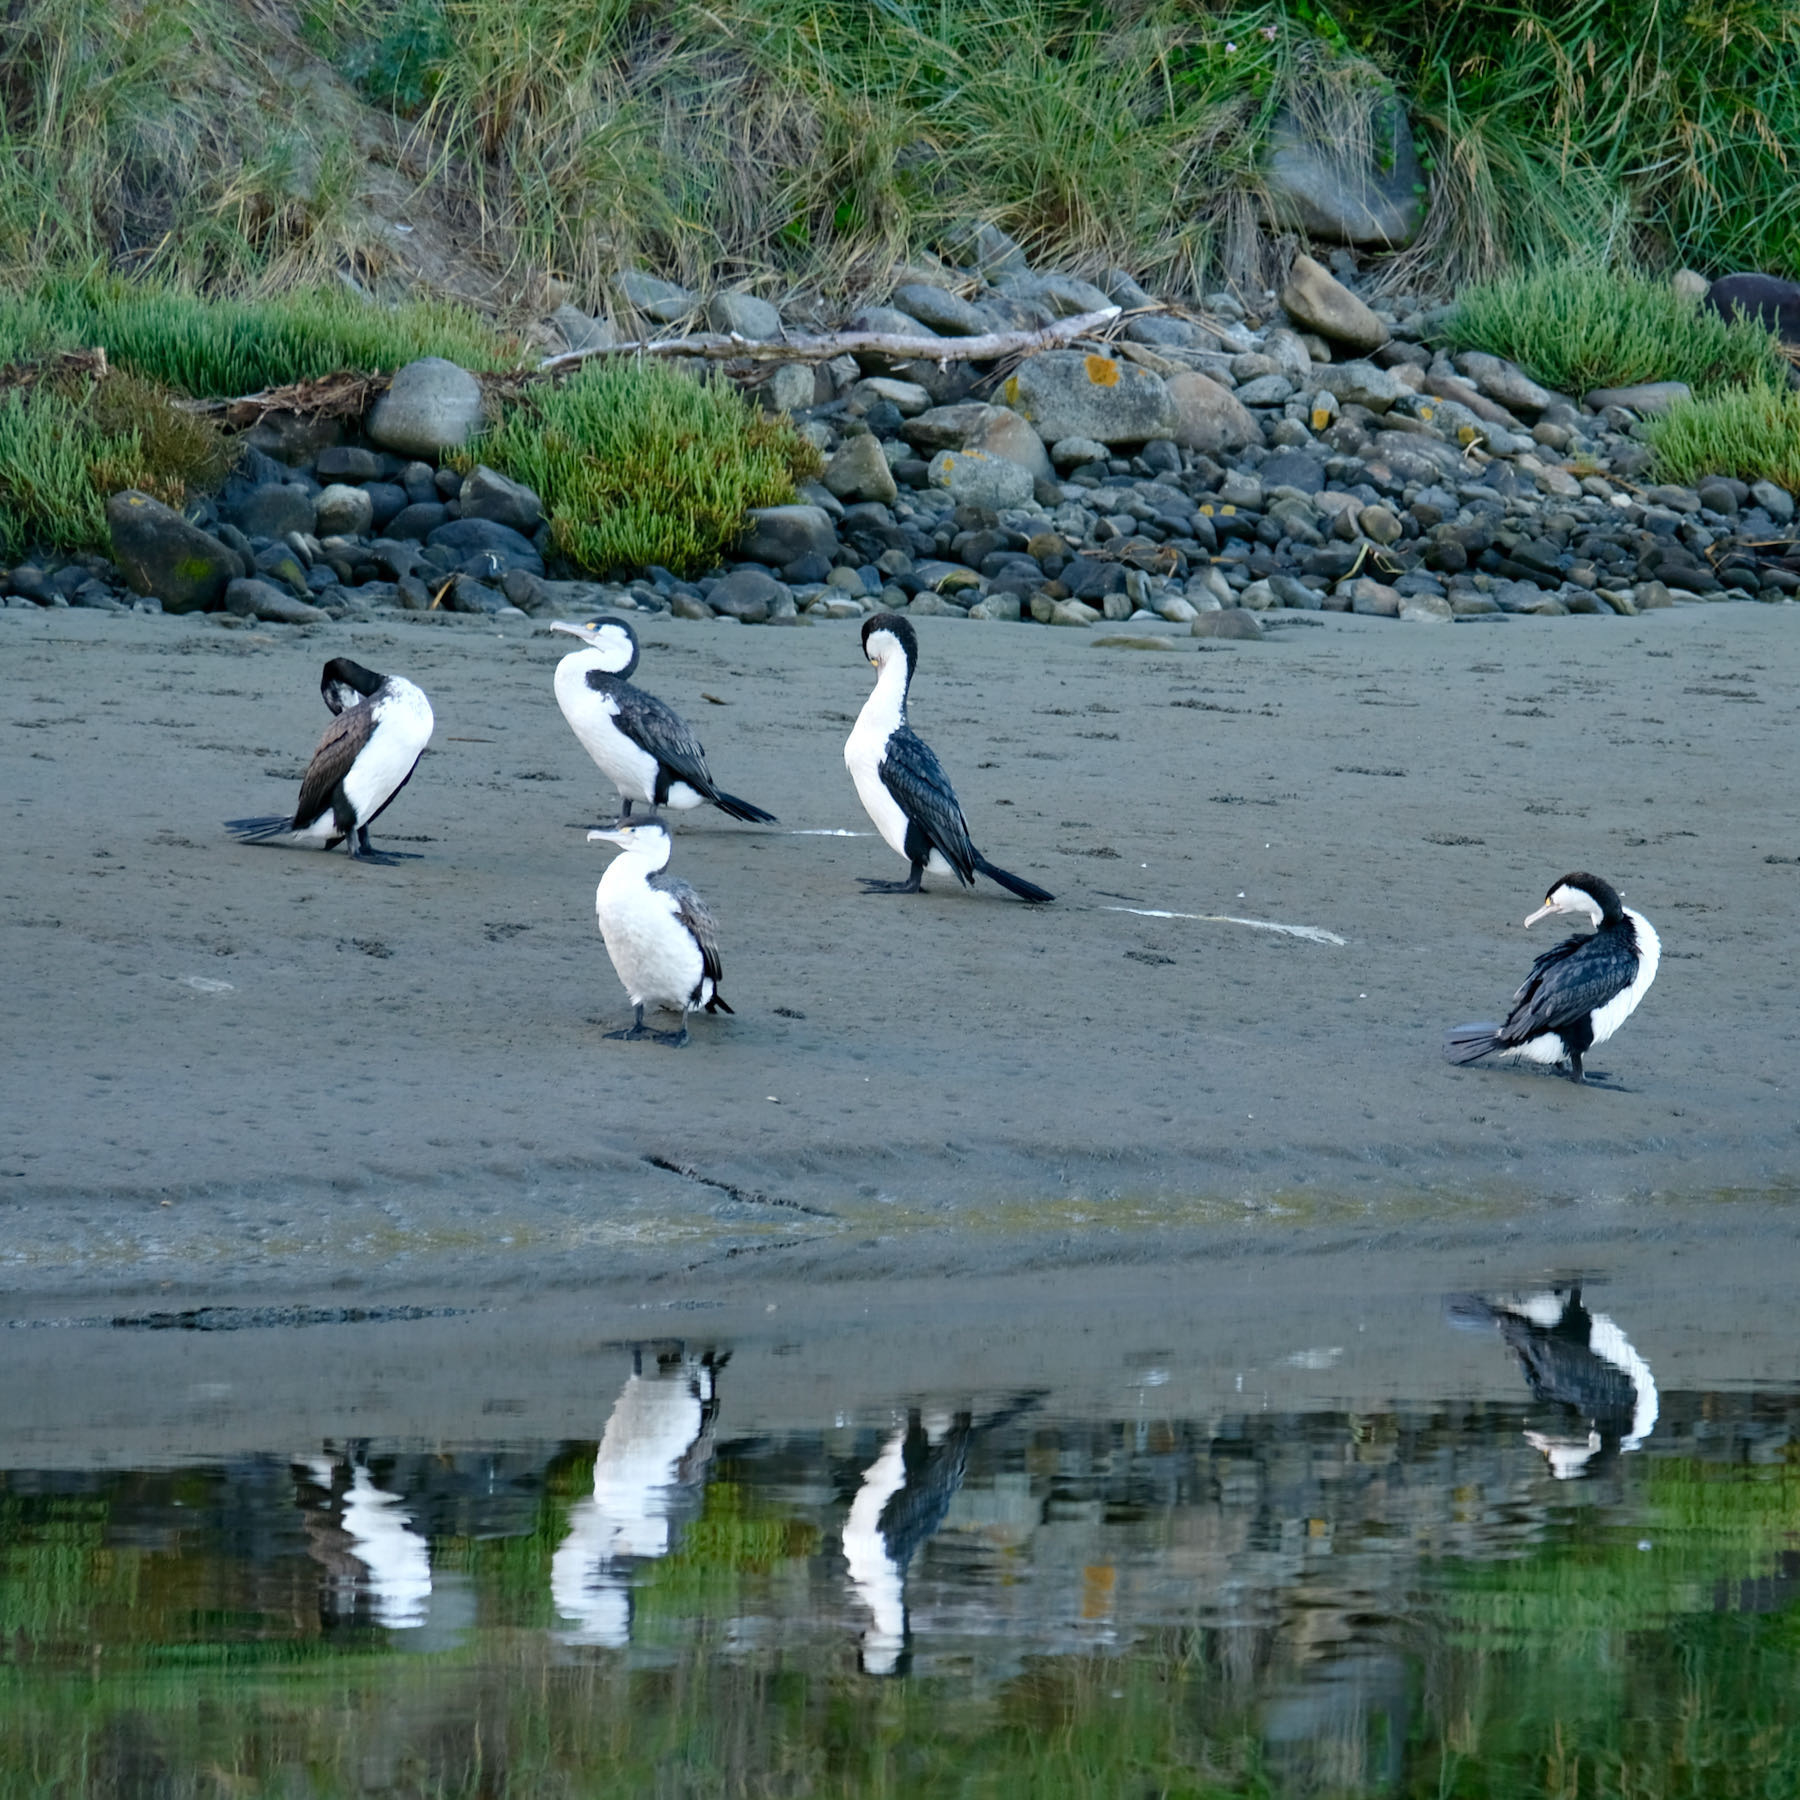 Half a dozen shags beside the river, with their necks in various positions. Reflections too.